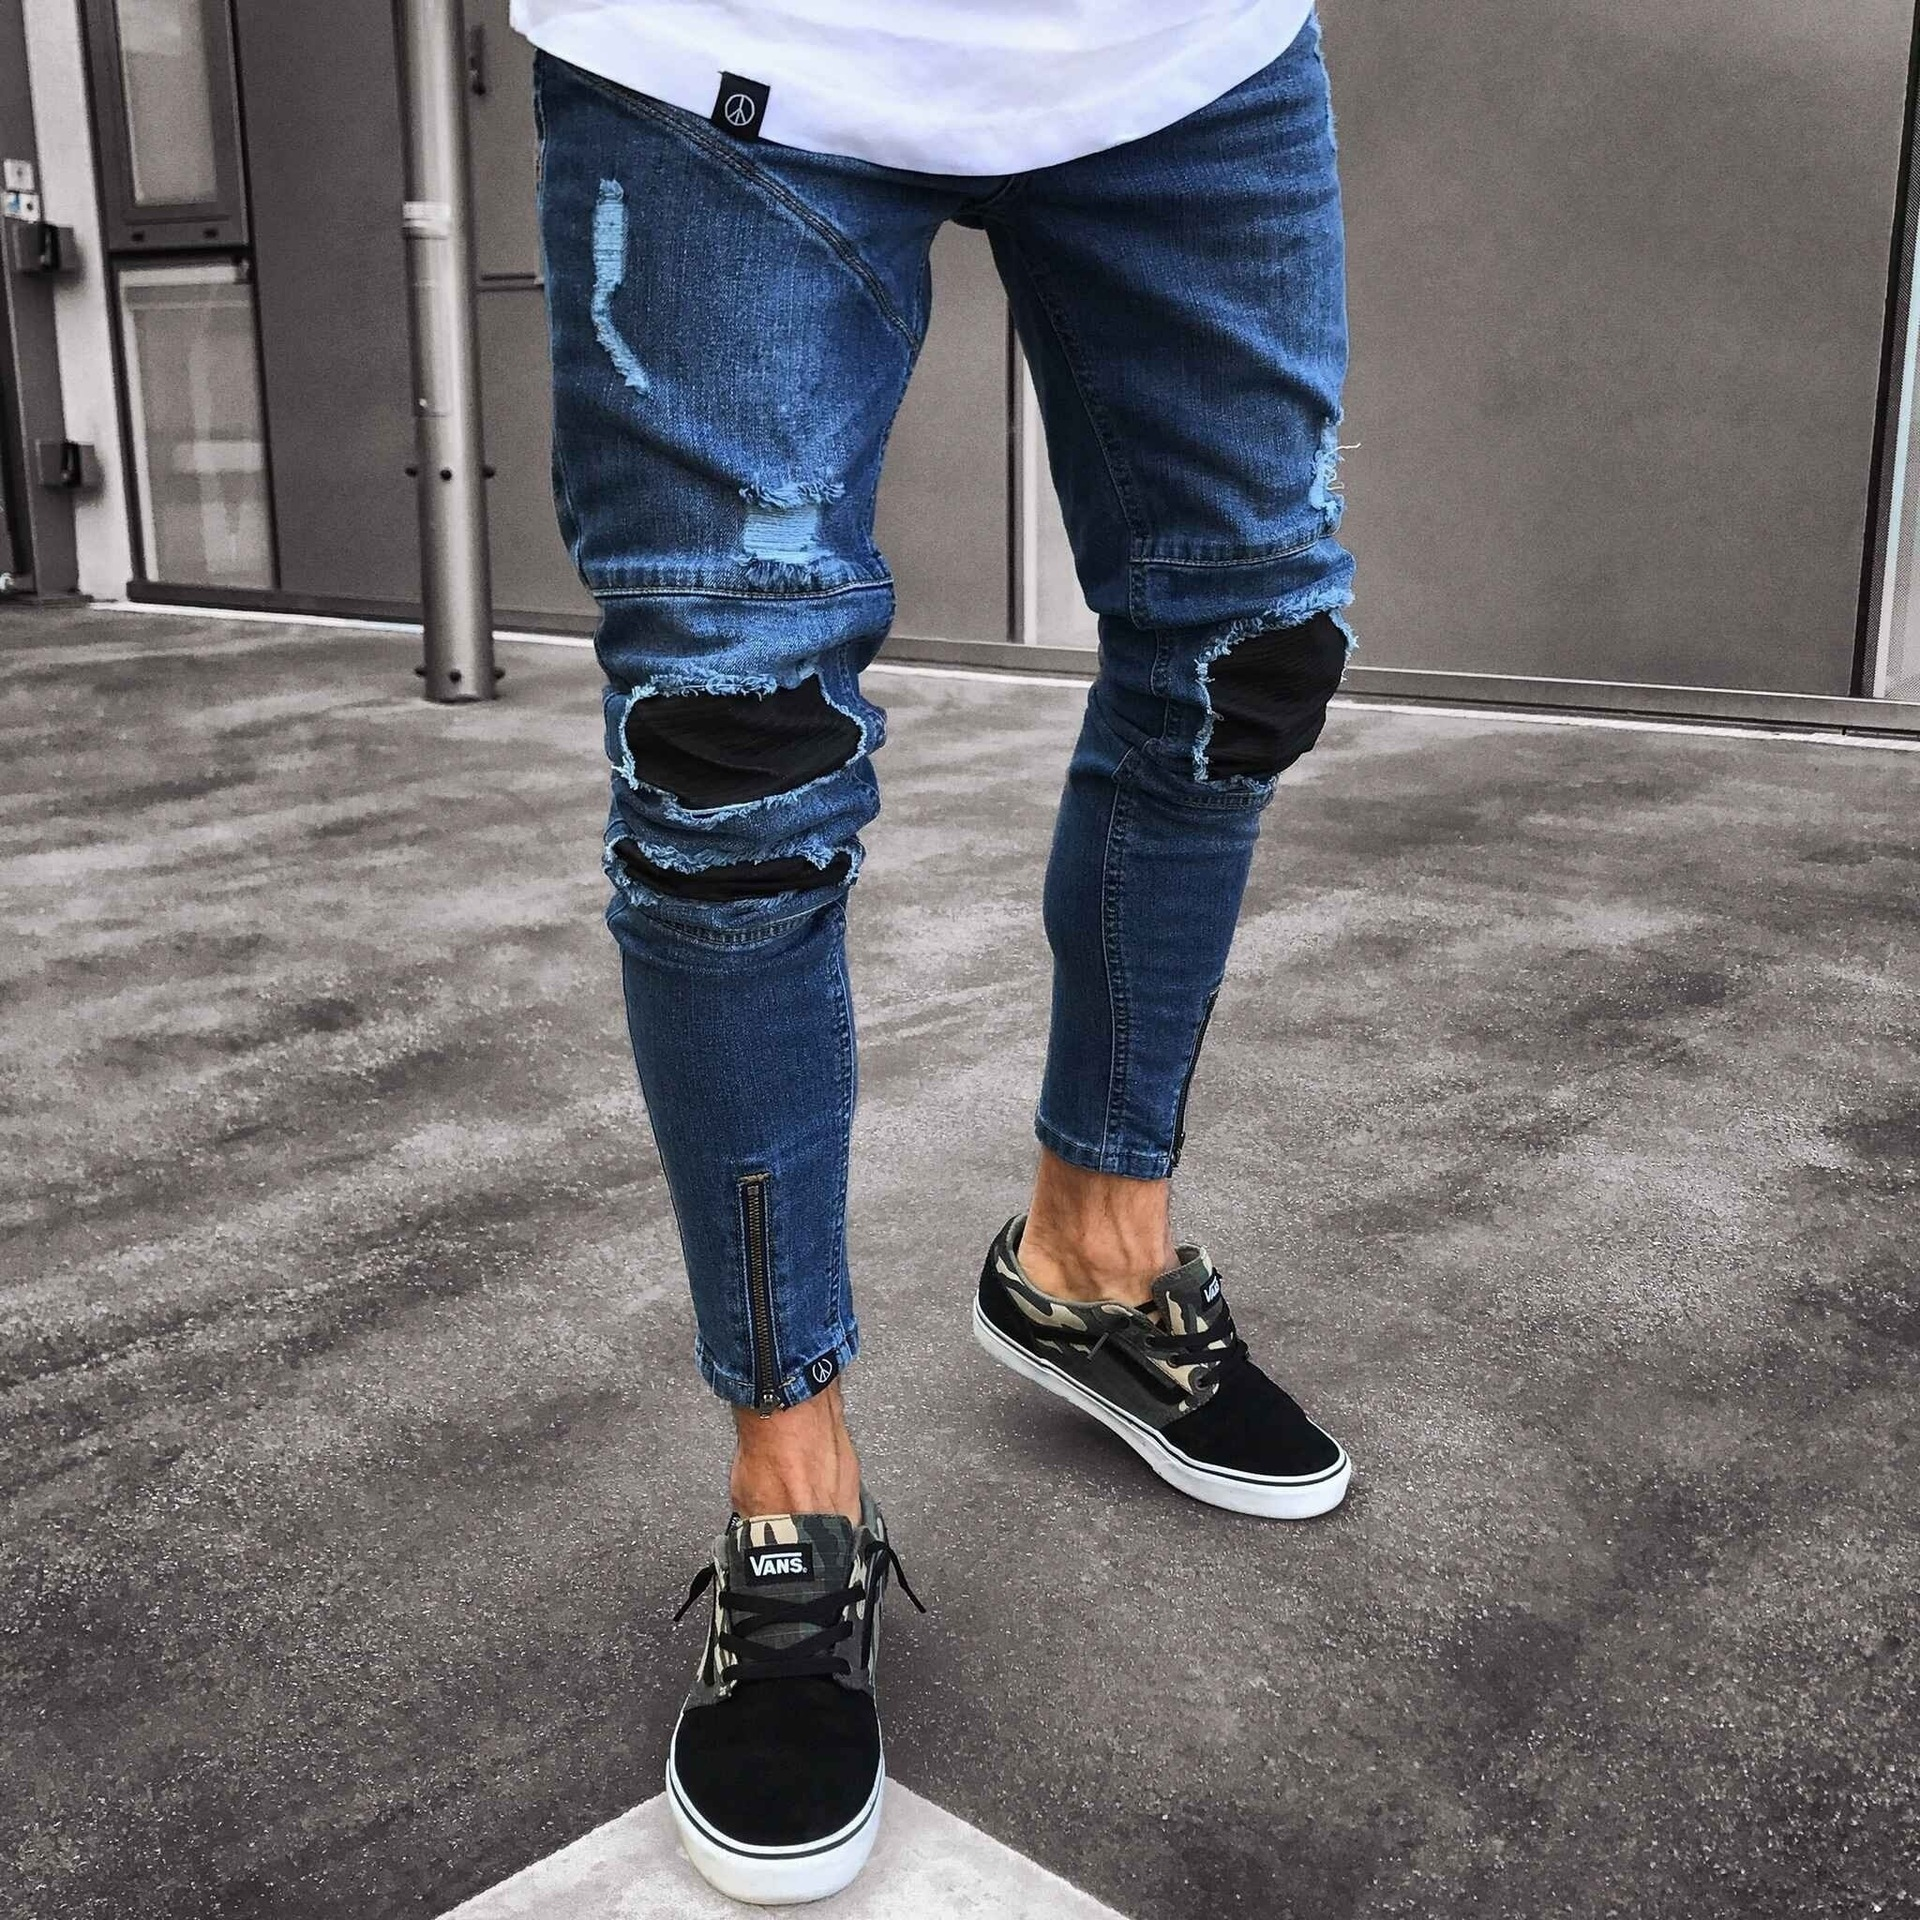 Jeans for Men Autumn Vintage Denim Pencil Pants Casual Stretch Trousers  Sexy Skull Hole Ripped Male Zipper Jeans Plus Size a7caf4f1d444